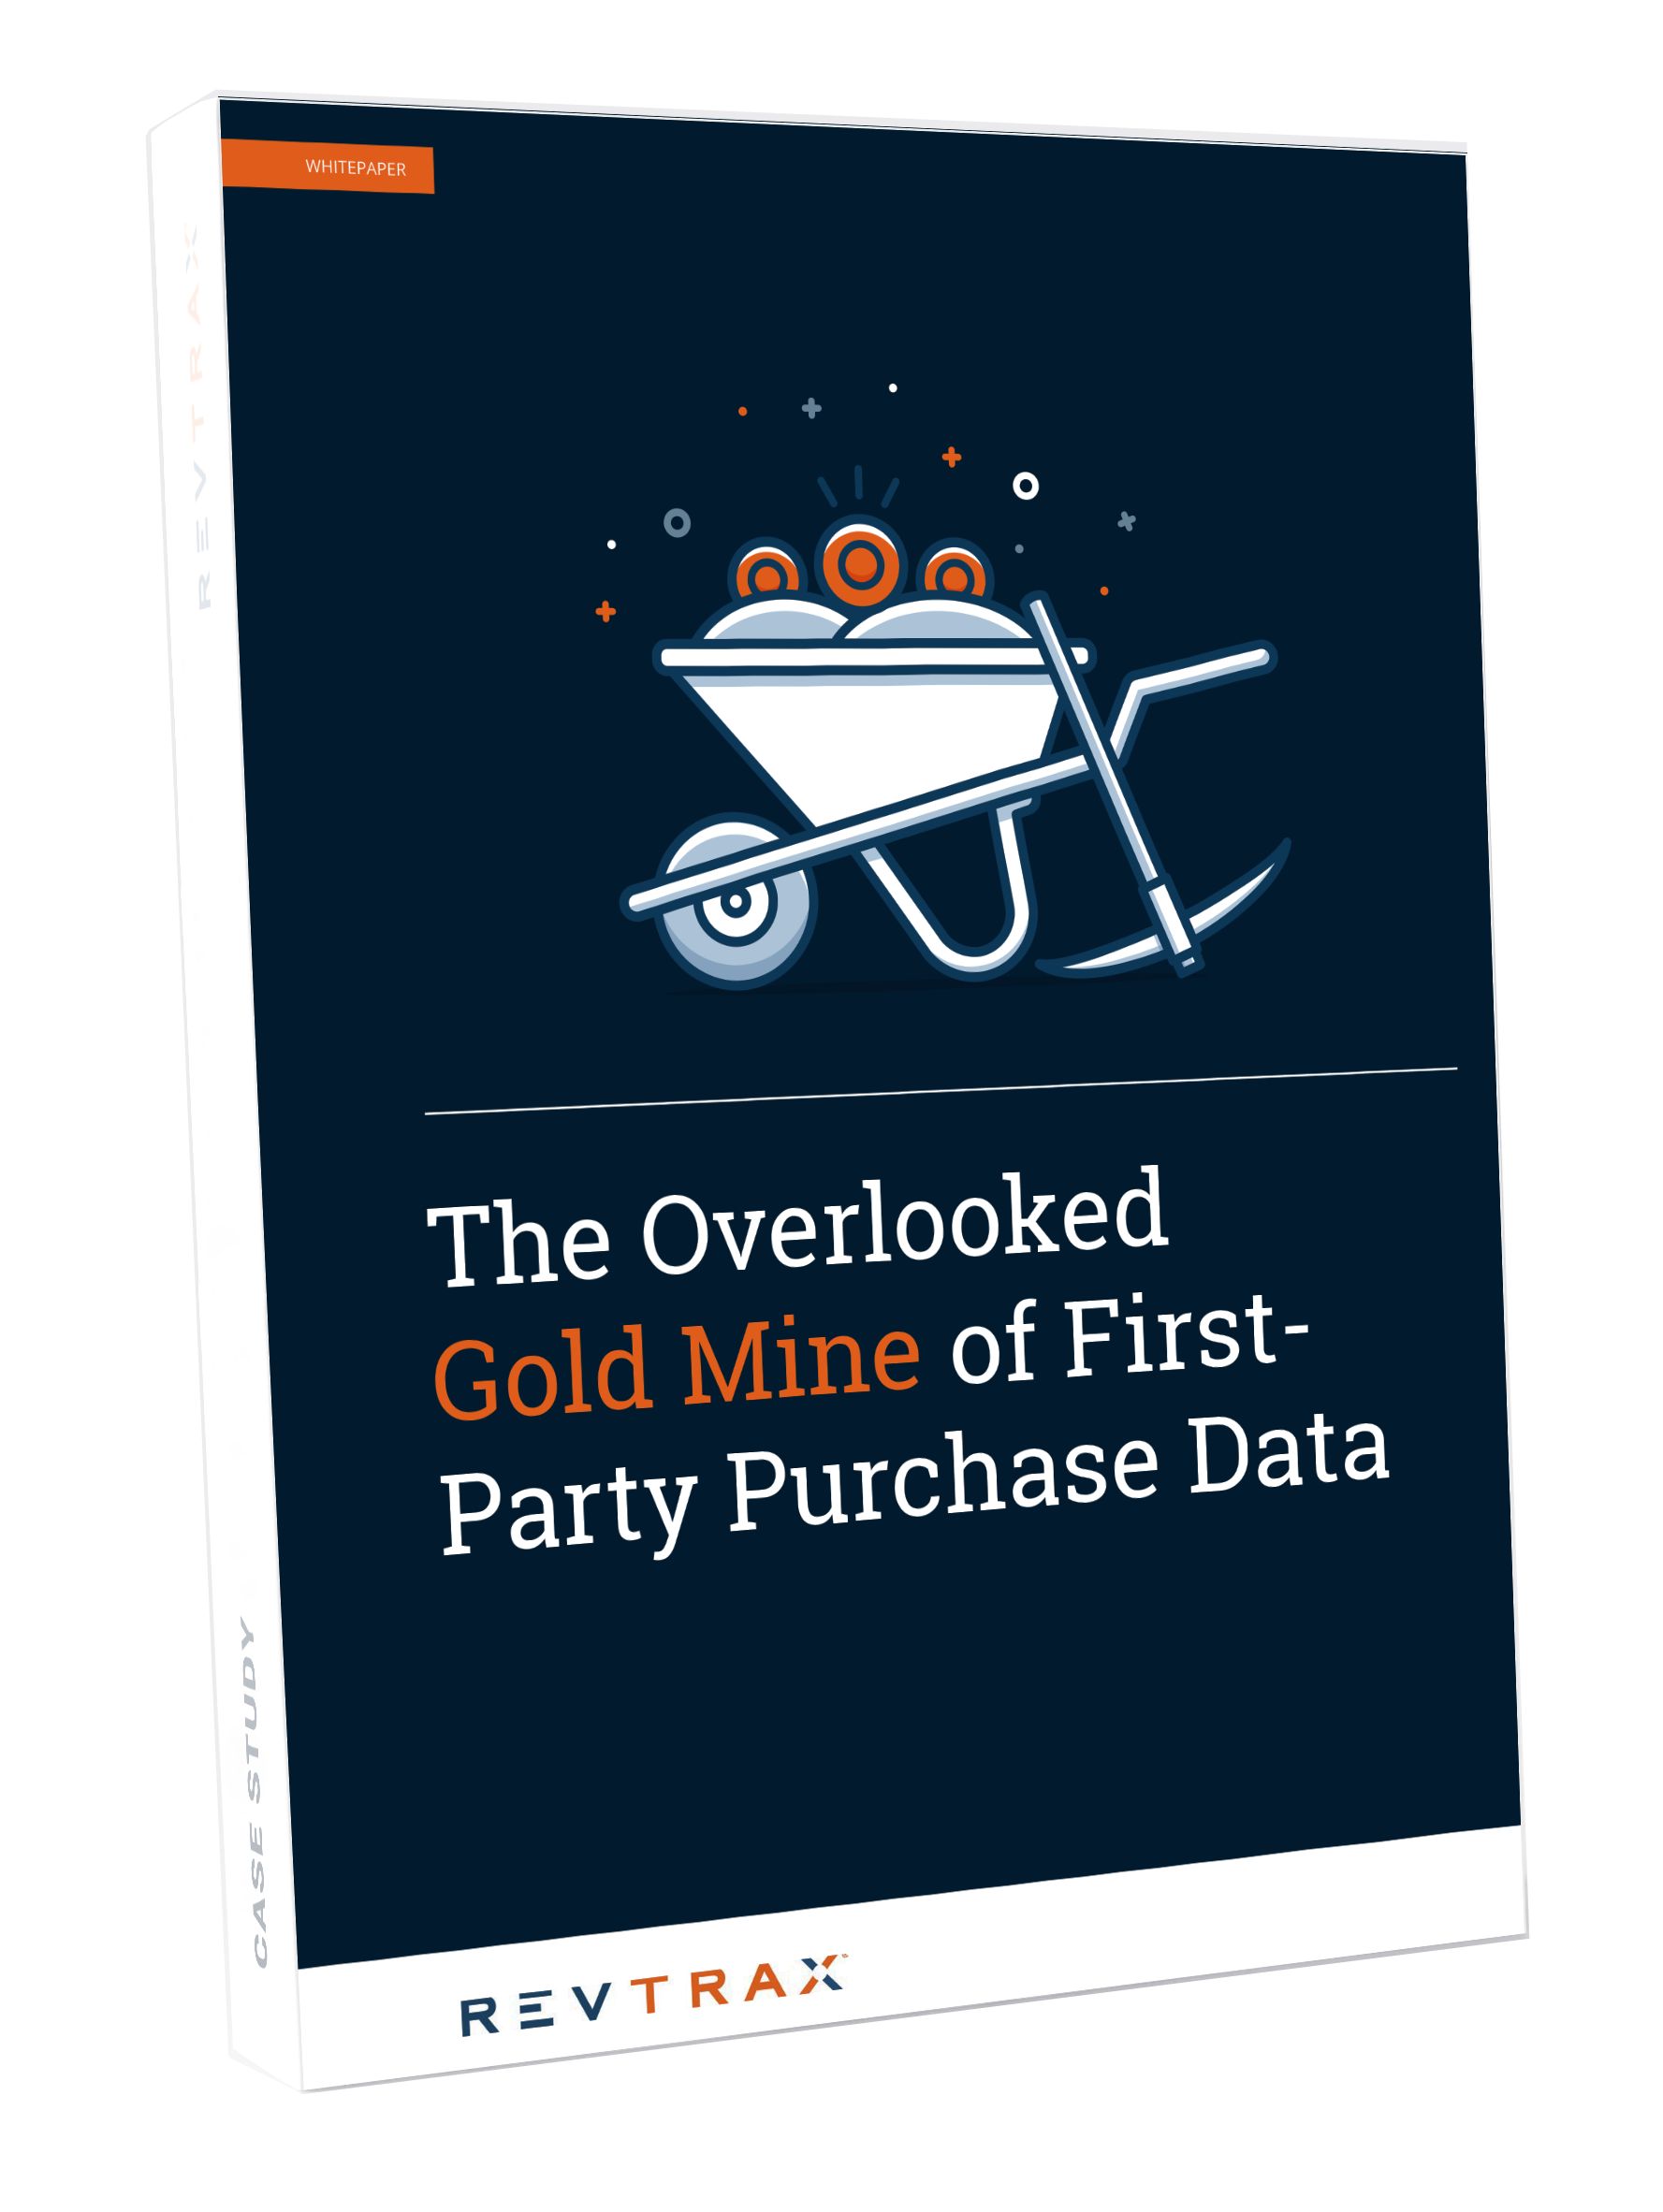 first-party-purchase-data-ebook-cover.png